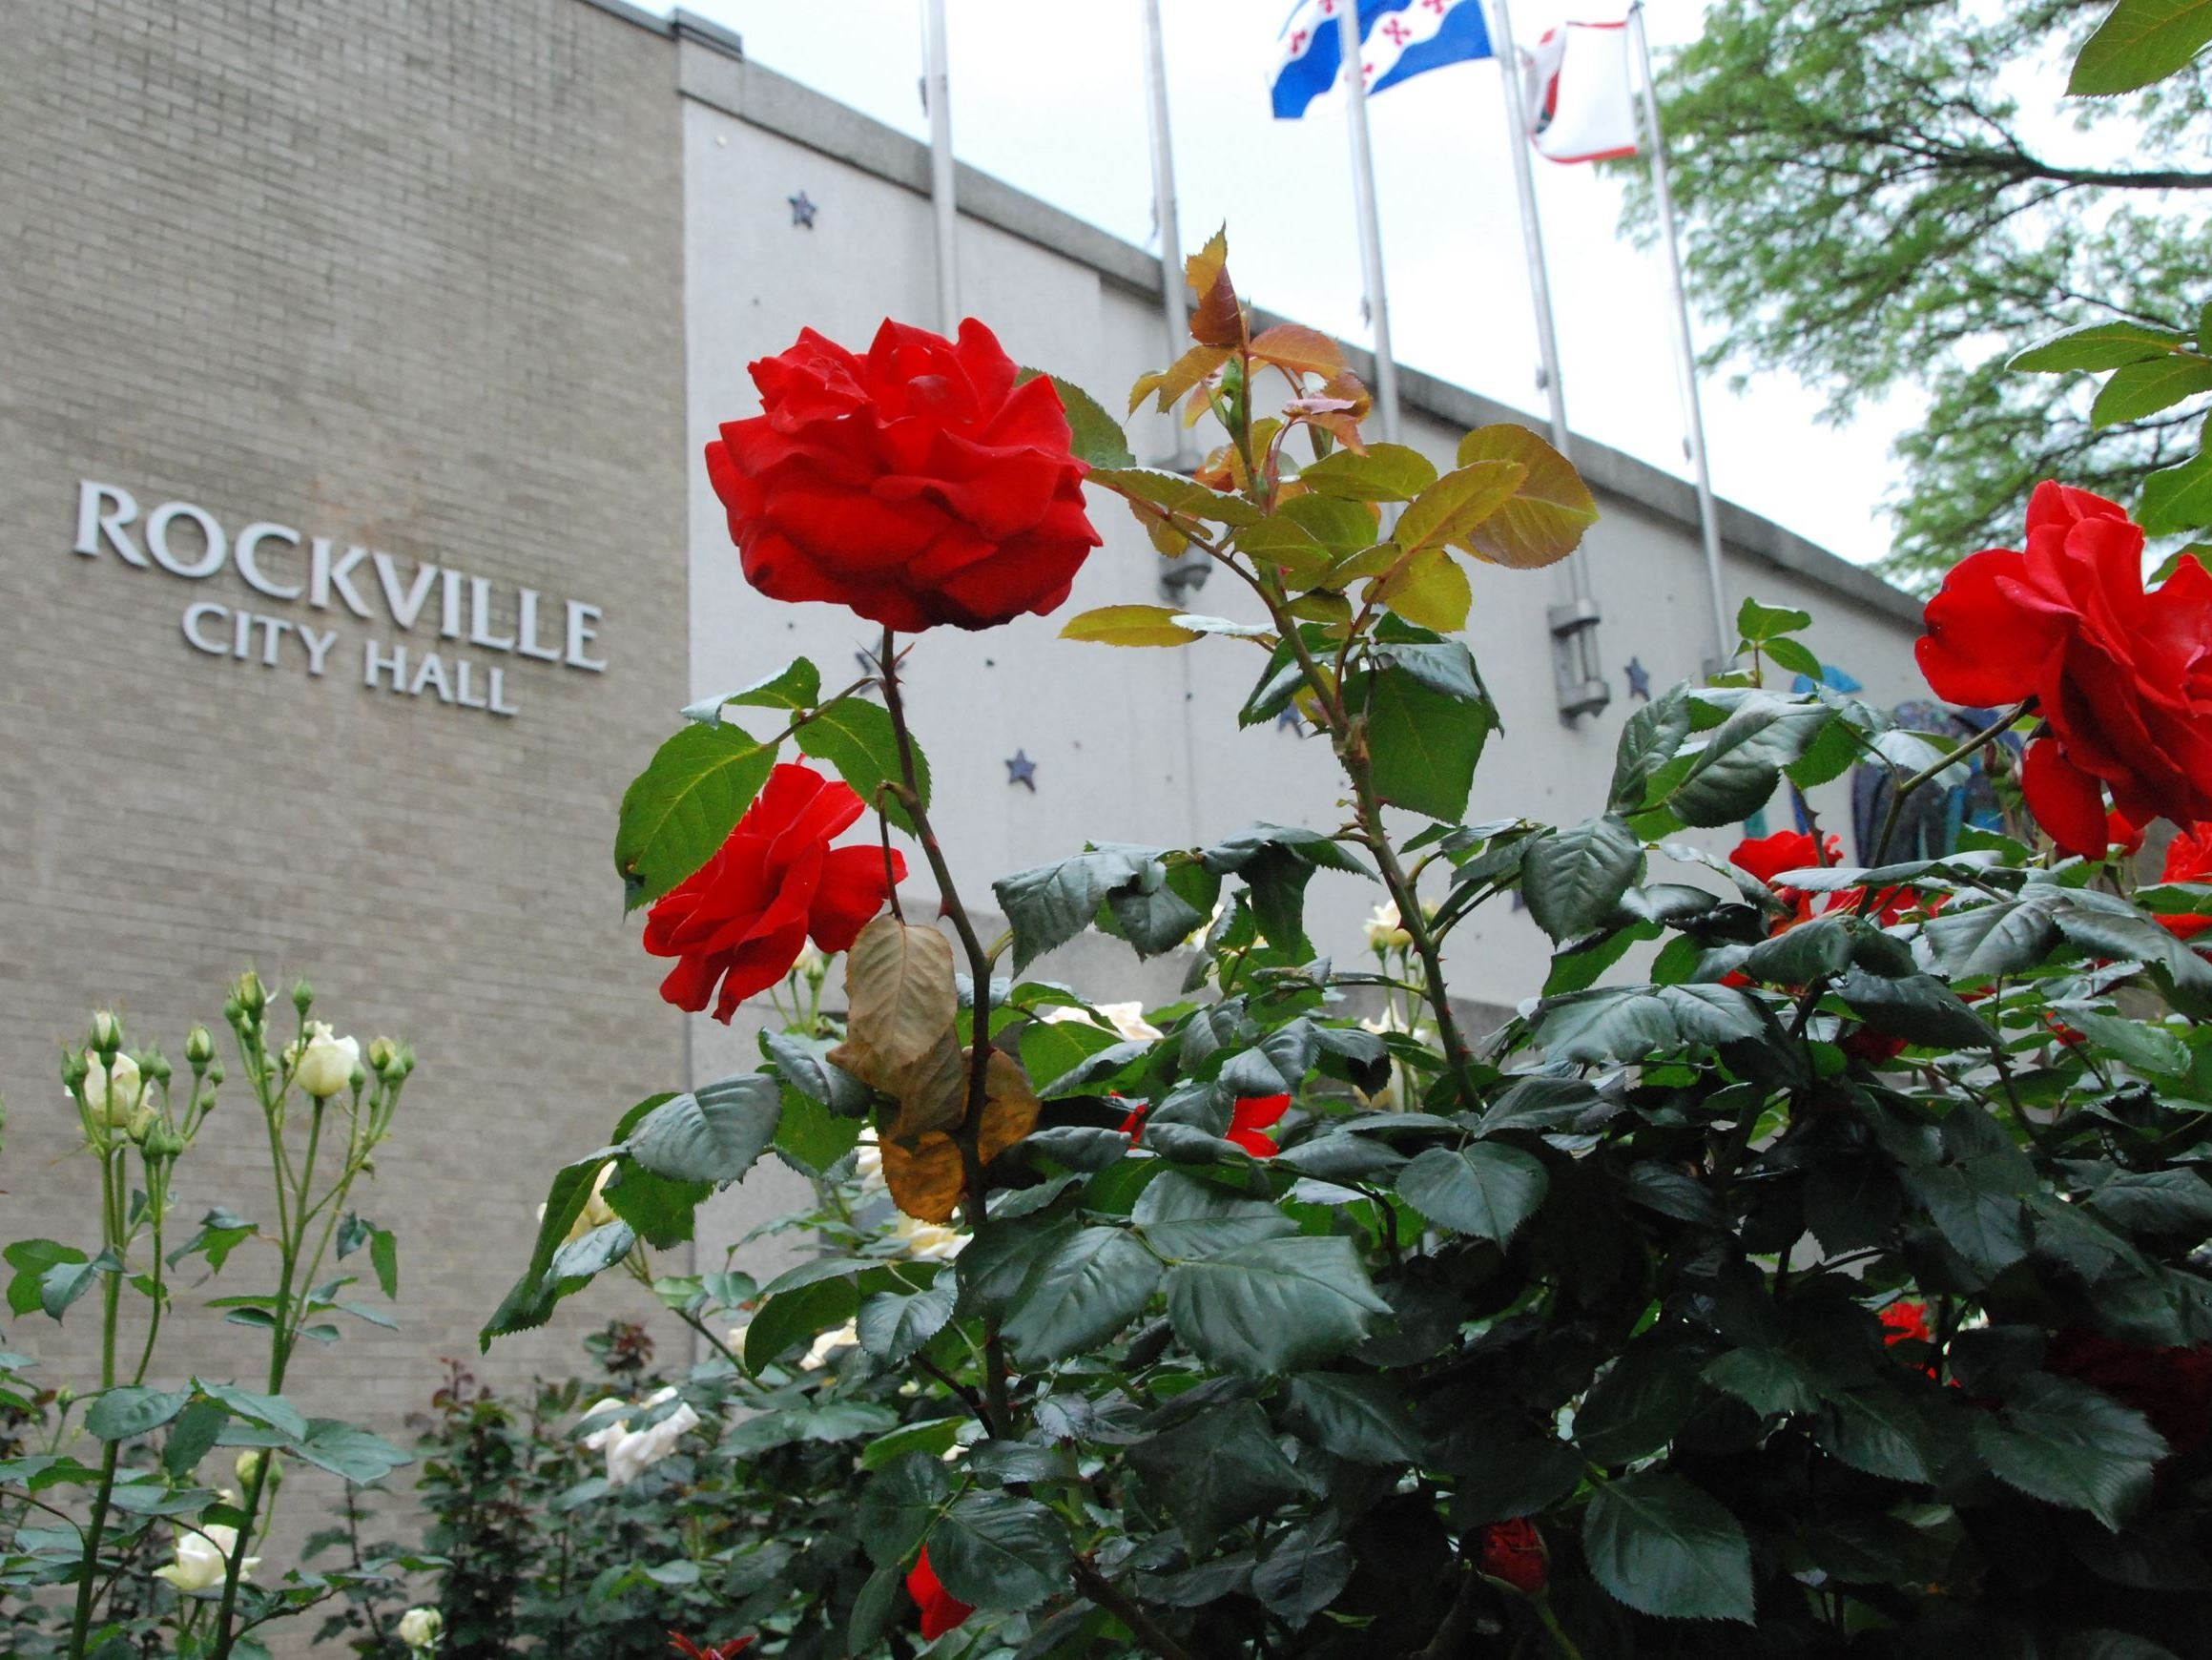 Front of City Hall with red roses in the forefront